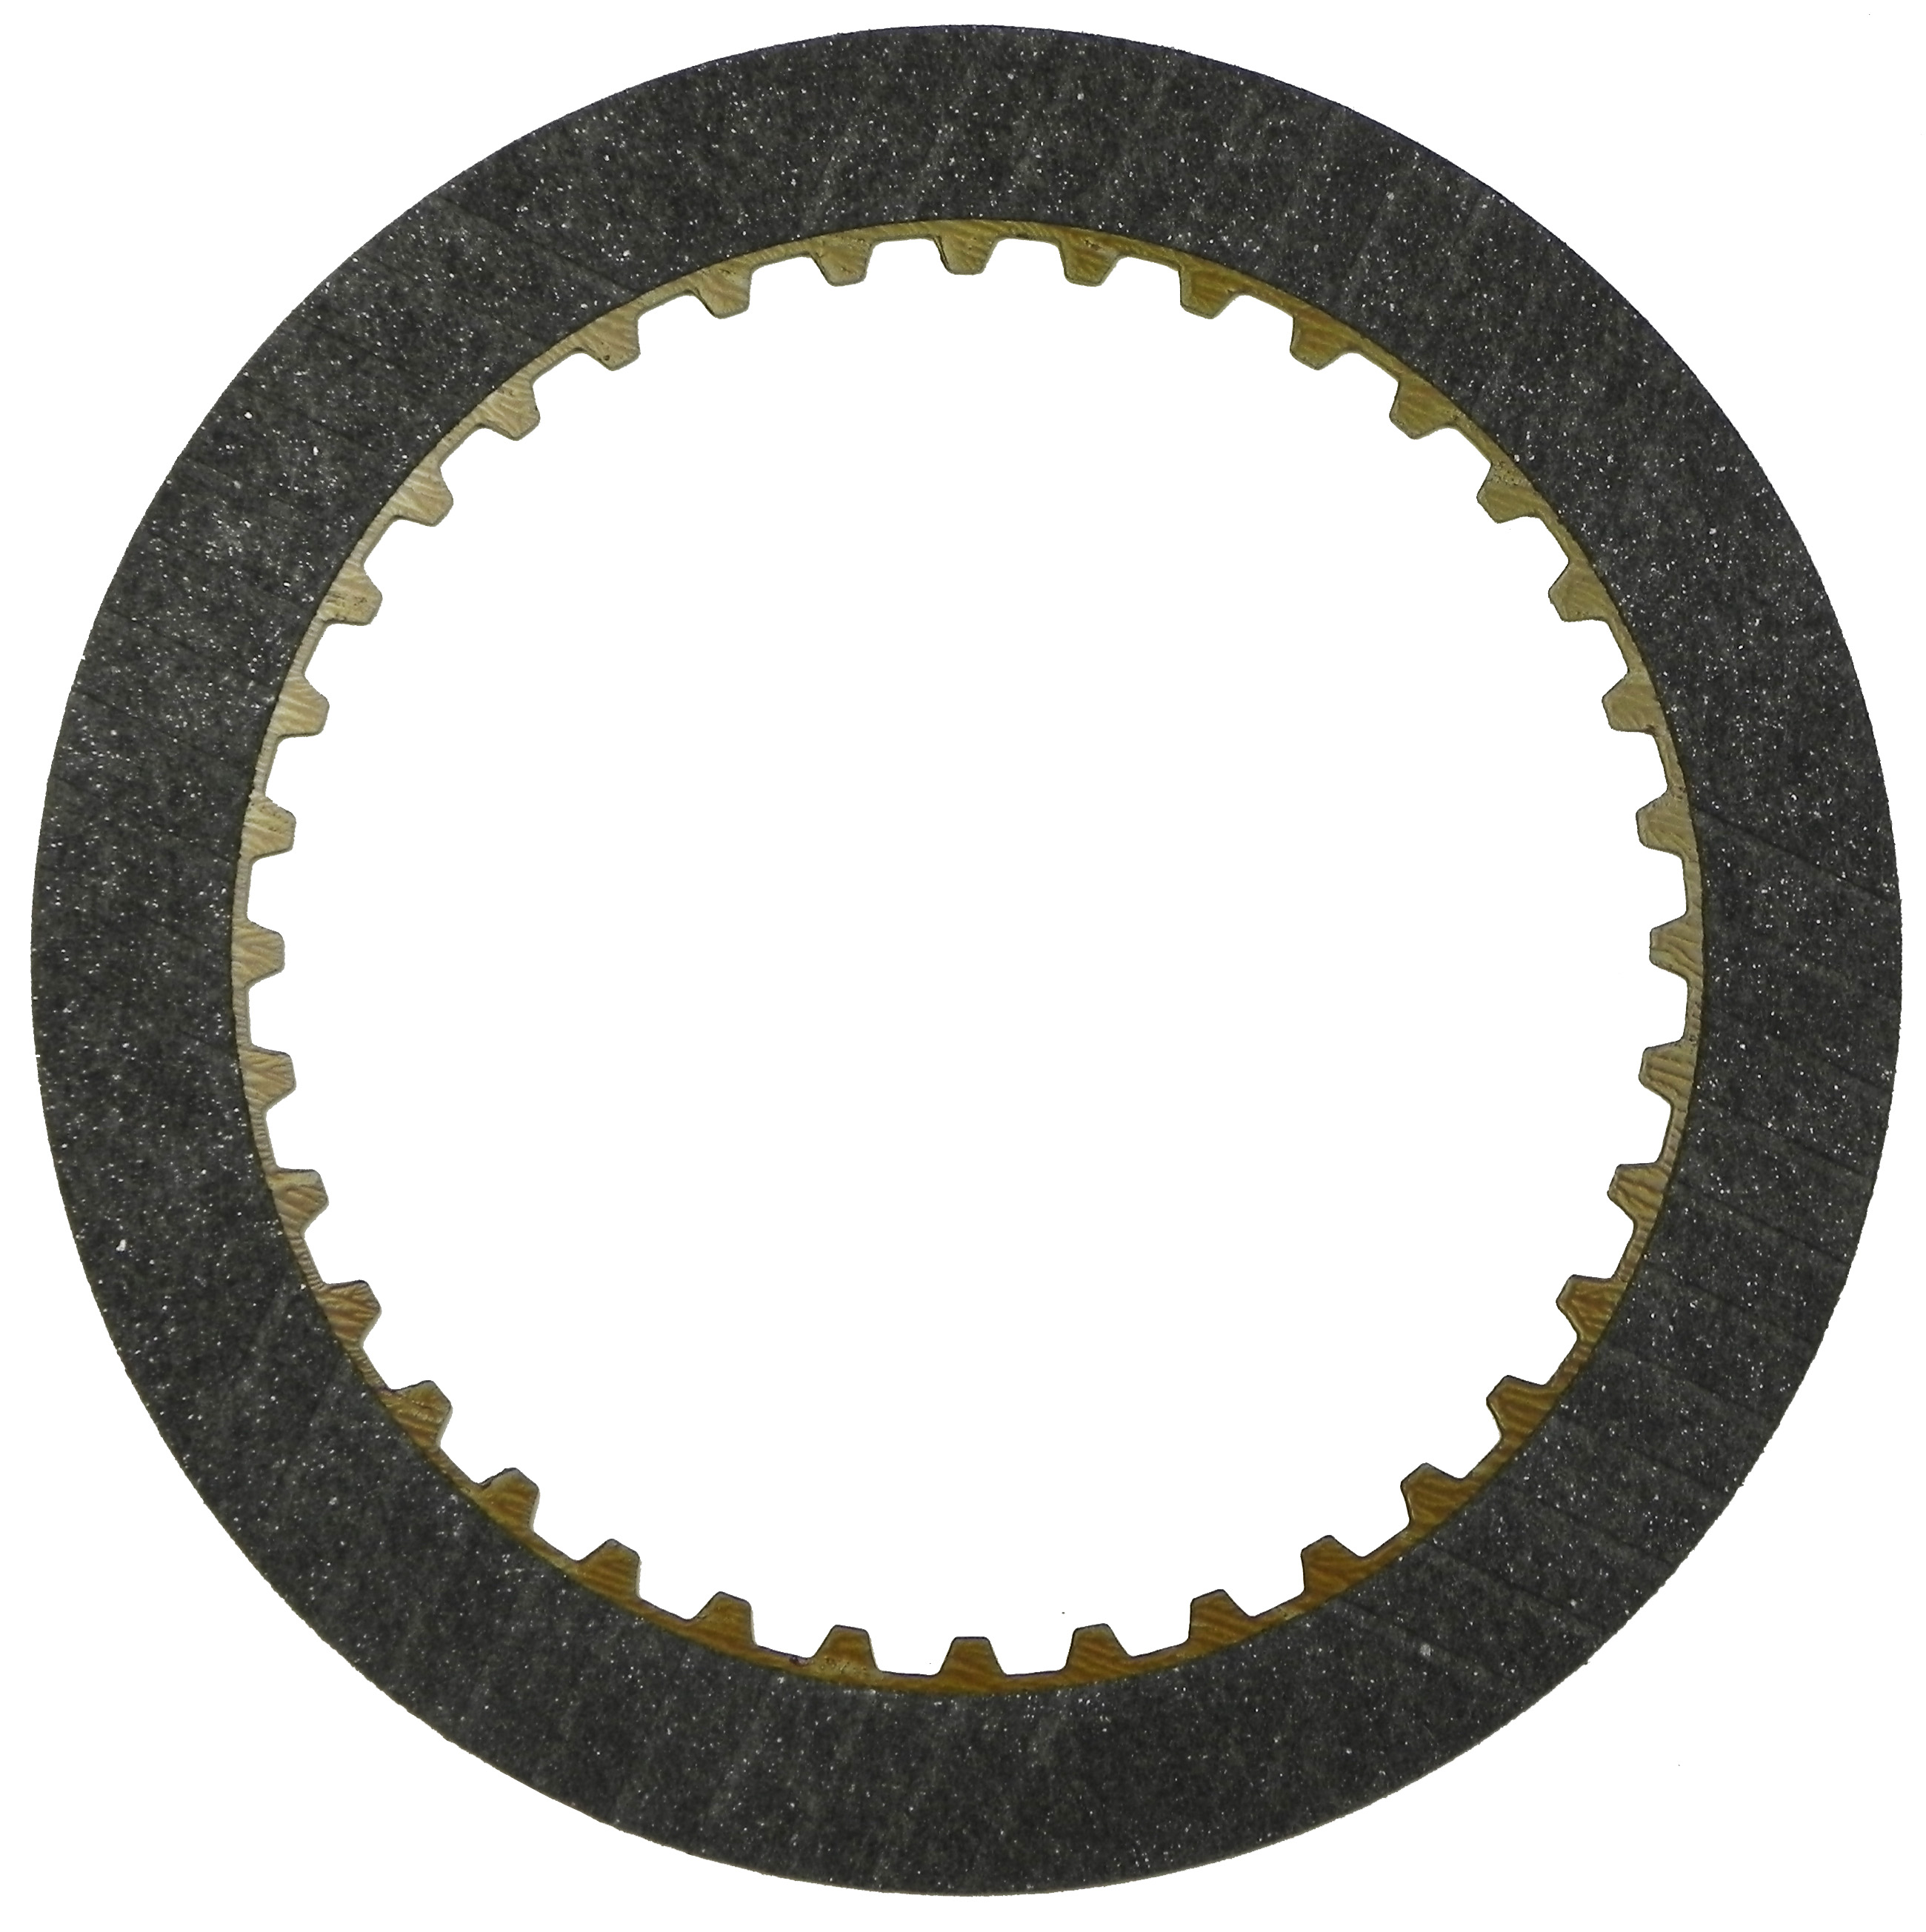 R565120 | 1999-ON Friction Clutch Plate High Energy Overdrive, End Clutch High Energy